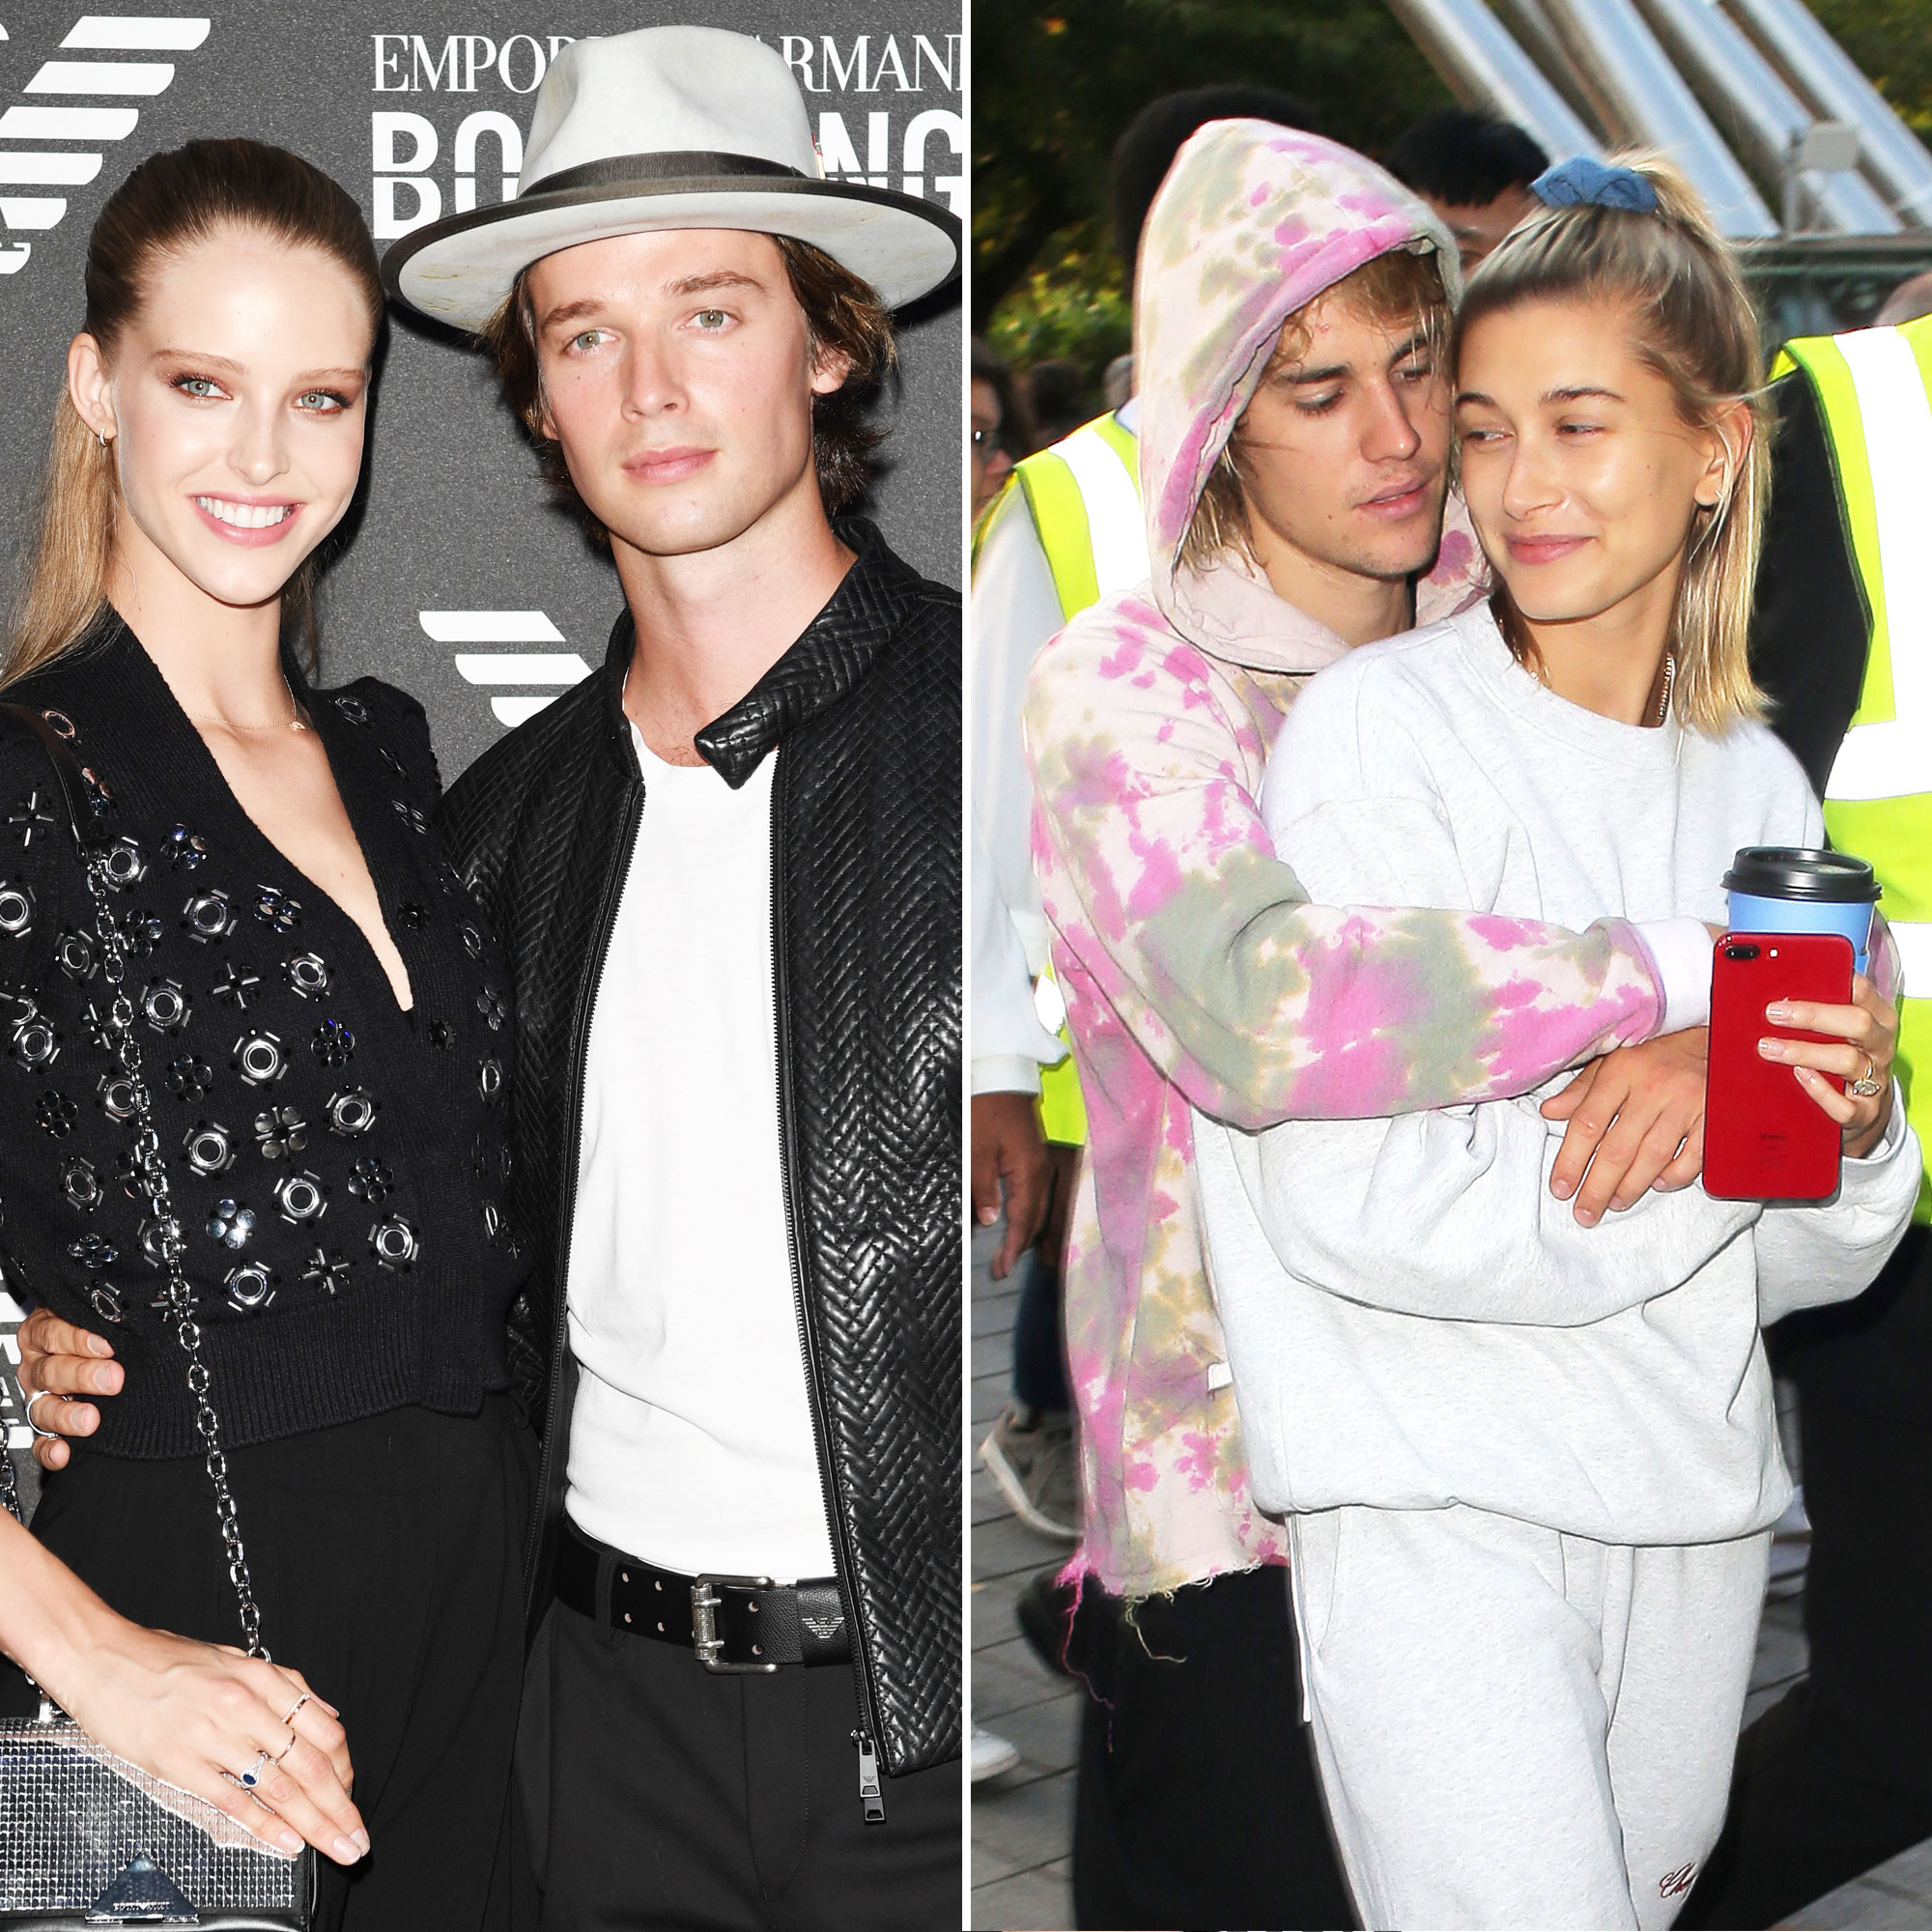 Patrick Schwarzenegger Jokingly Calls Justin Bieber and Hailey Baldwin the '2nd Best Looking Couple' After Himself, Girlfriend Abby Champion - Abby Champion, Patrick Schwarzenegger, Justin Bieber and Hailey Baldwin